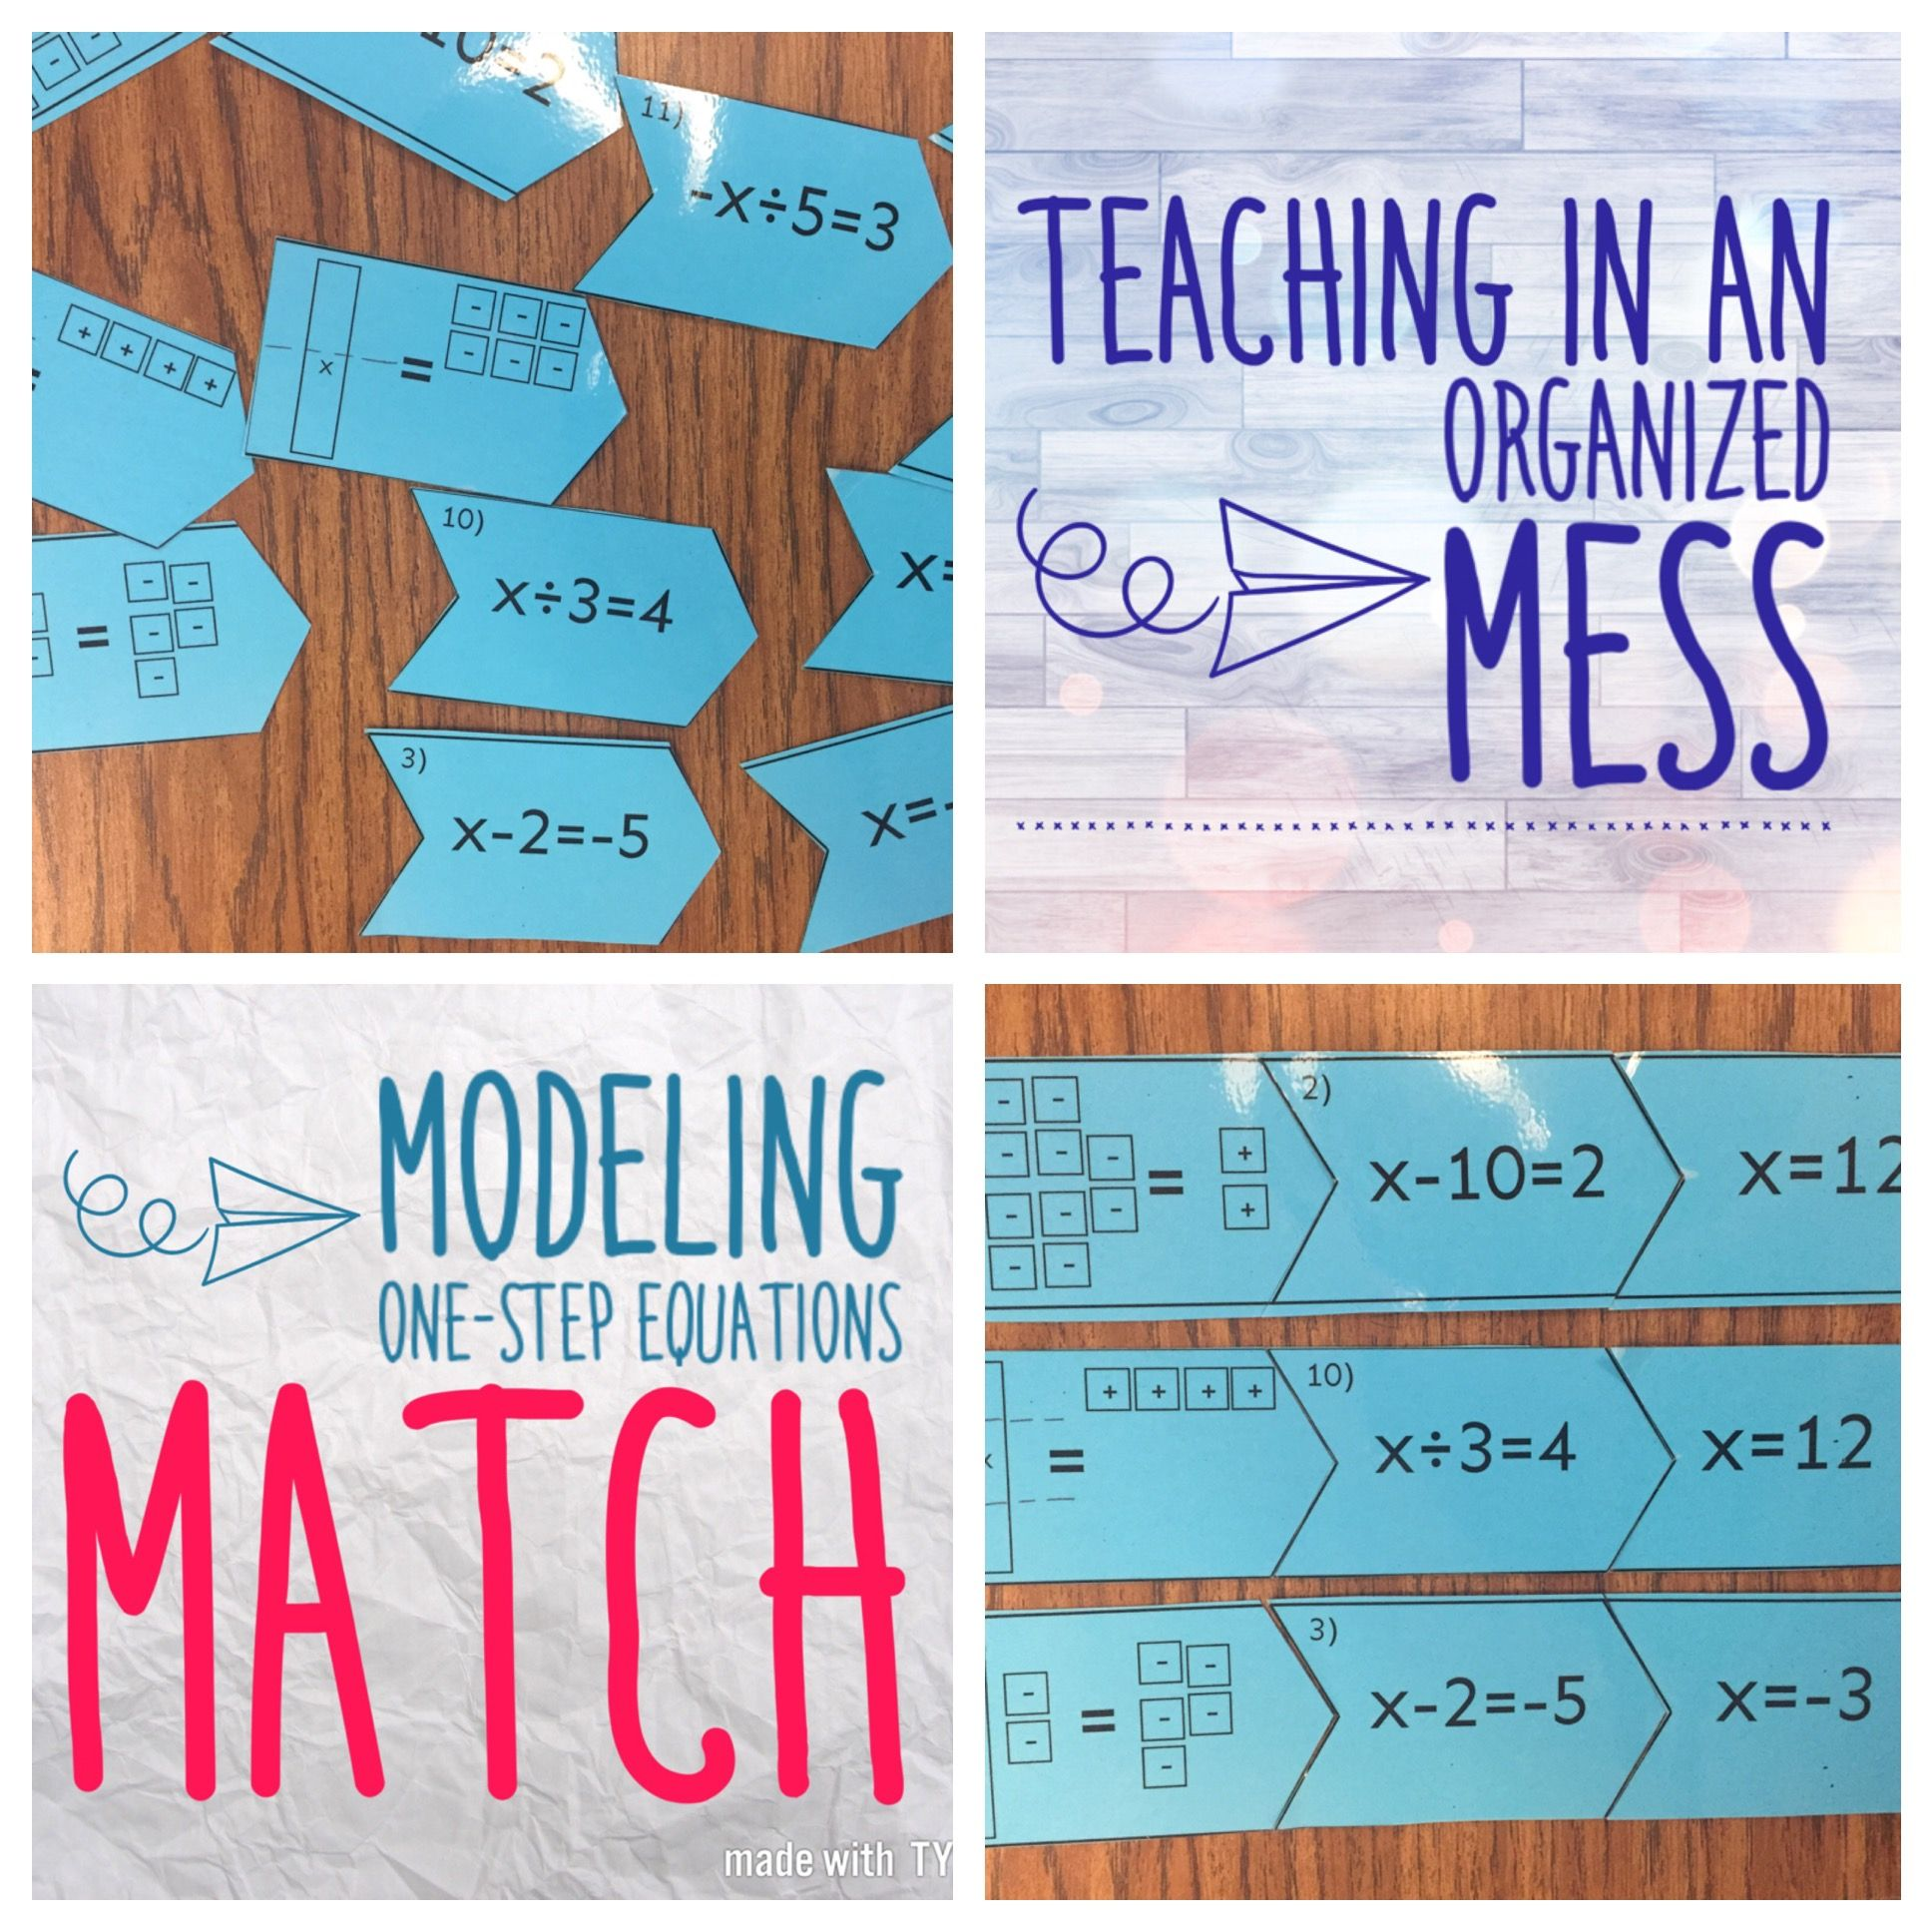 hight resolution of Modeling One Step Equations Matching   One step equations